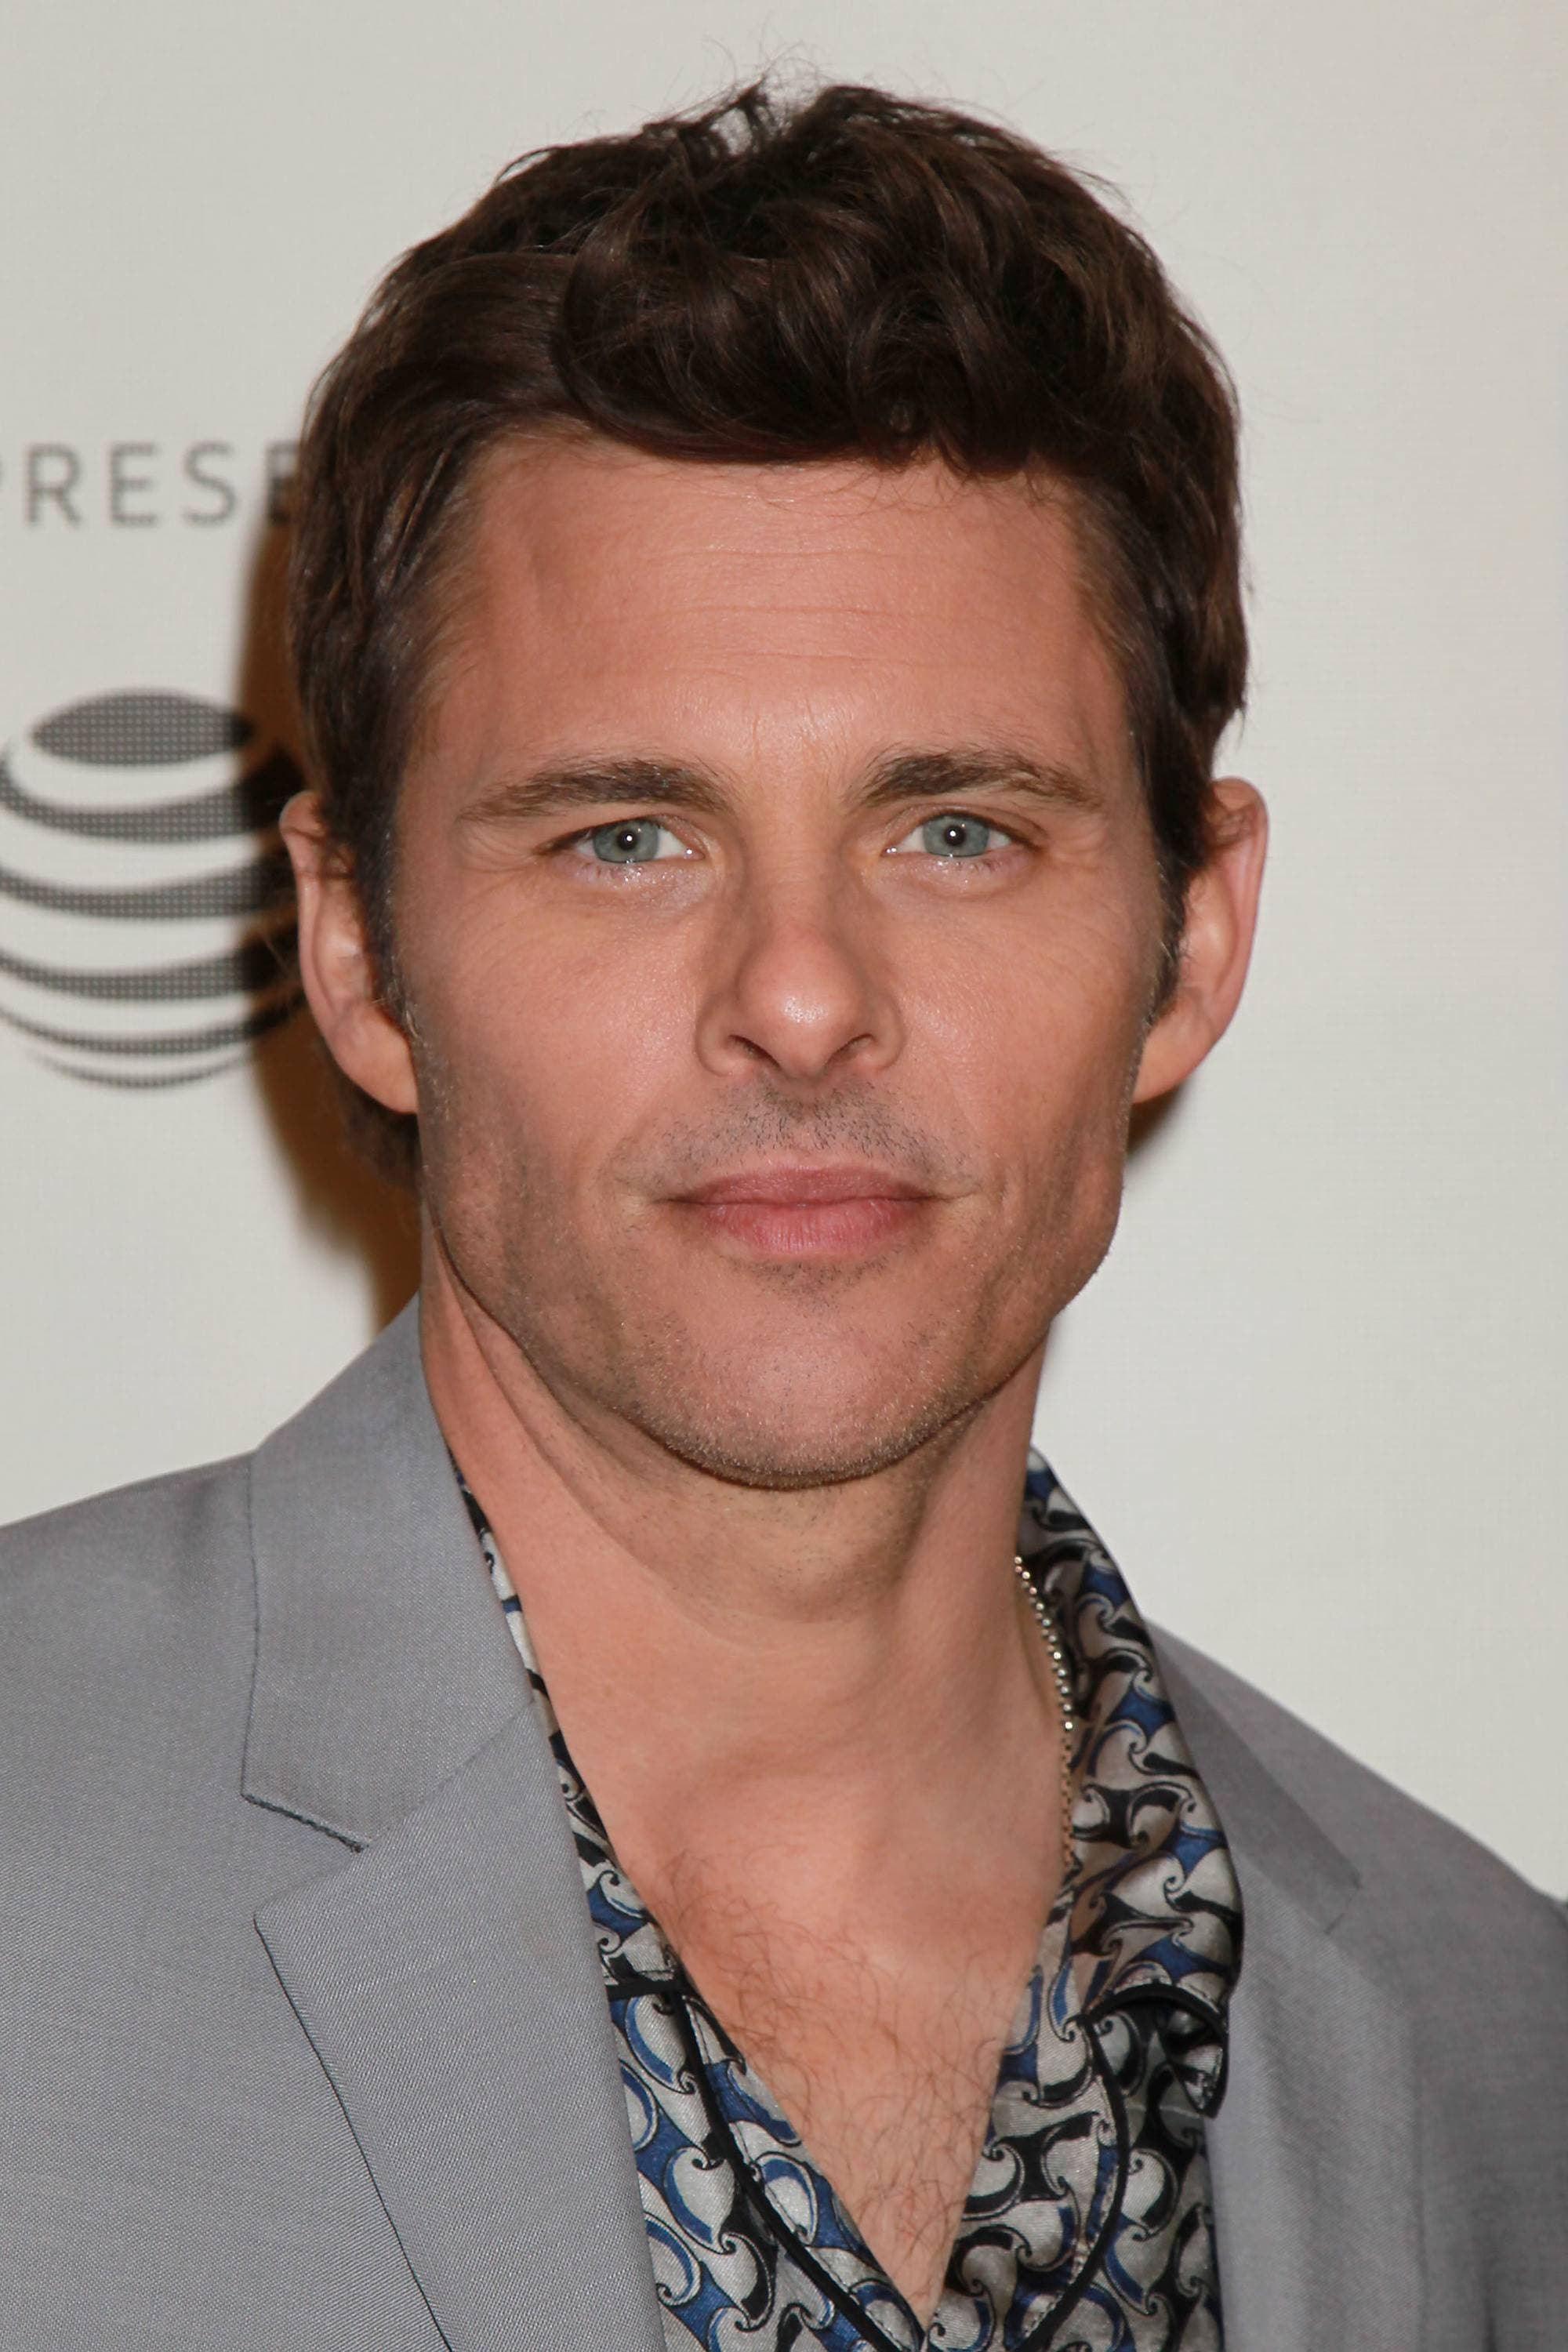 Hairstyles for men over 40: Close-up of James Marsden with textured brown hair